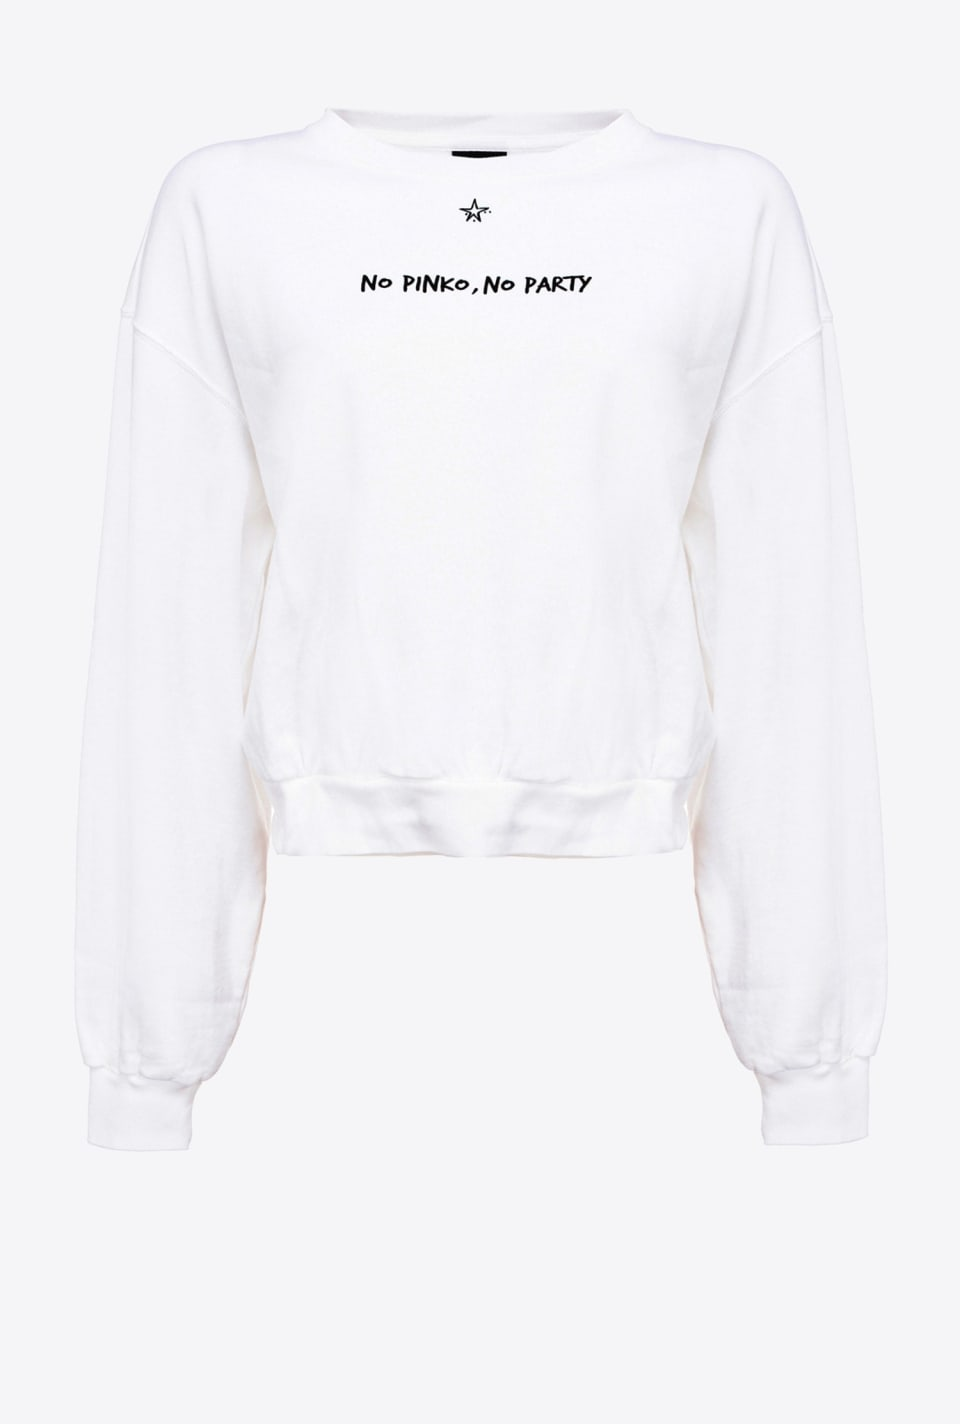 Cropped No PINKO No Party sweatshirt - Pinko